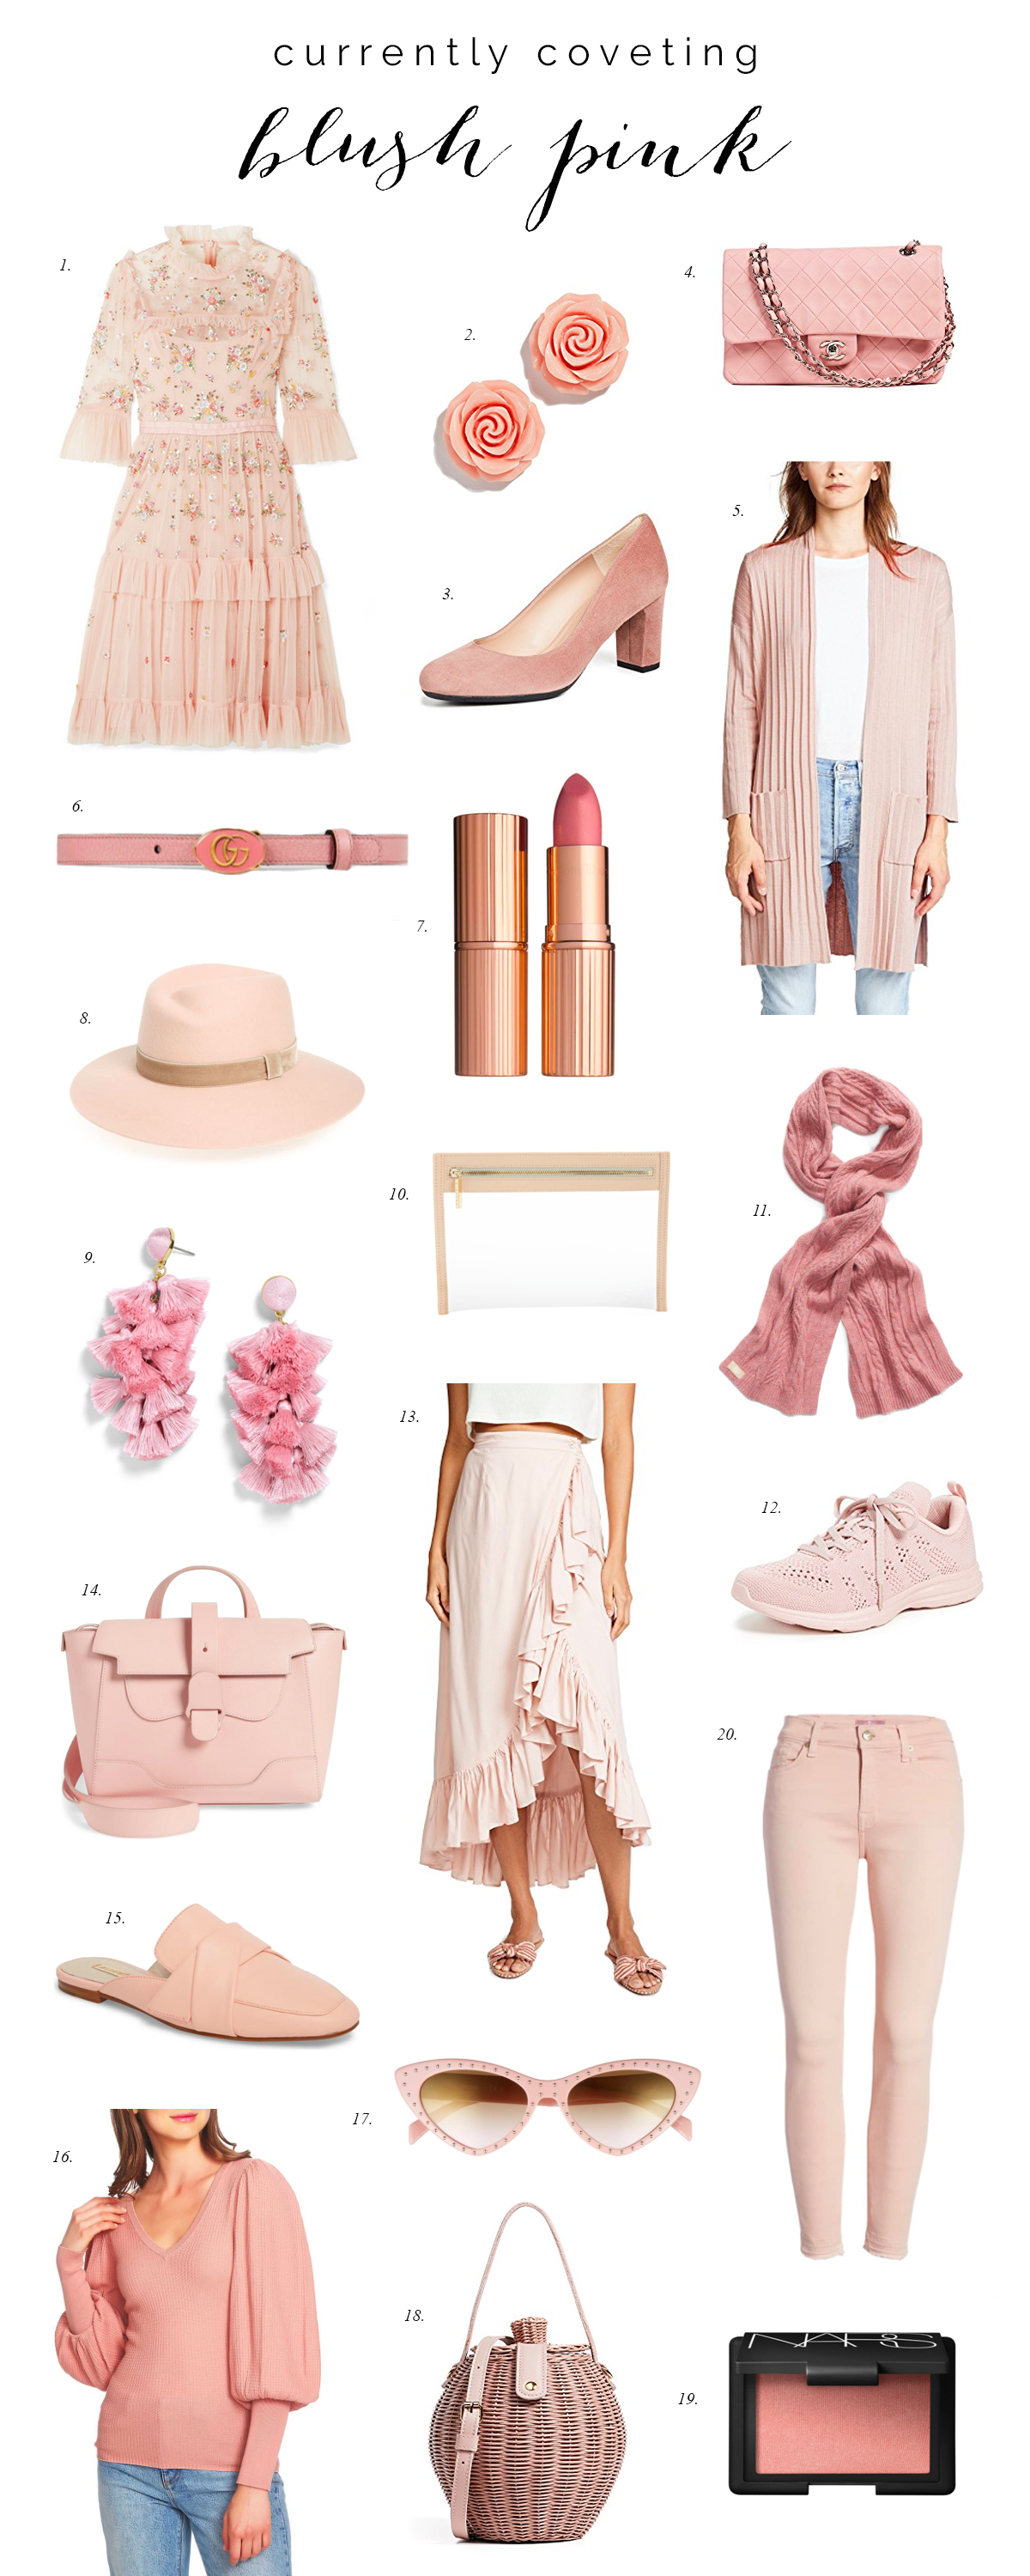 50725c0685f4e3 Friday Faves: Currently Covet – Blush Pink Outfit Ideas | Style Elixir |  Bloglovin'